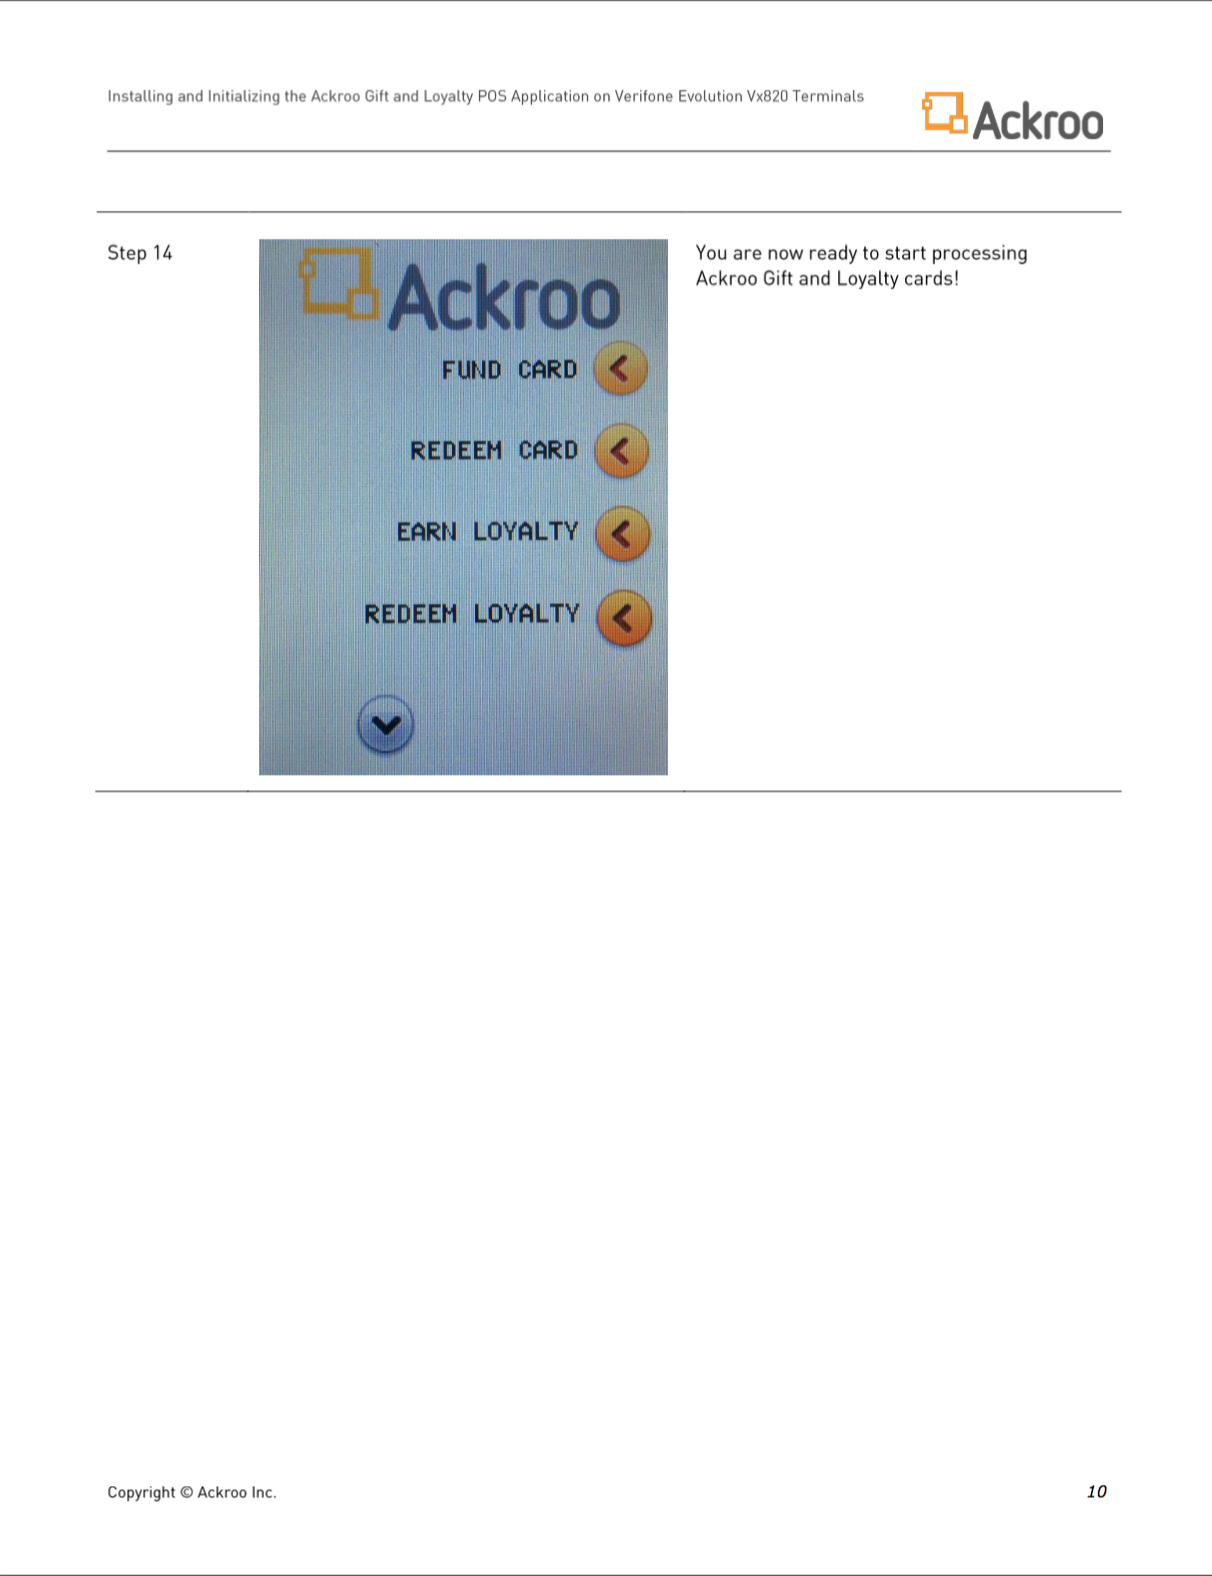 Verifone_Evolution_Vx680_Ackapp_installation_guide_-_Page_10.png